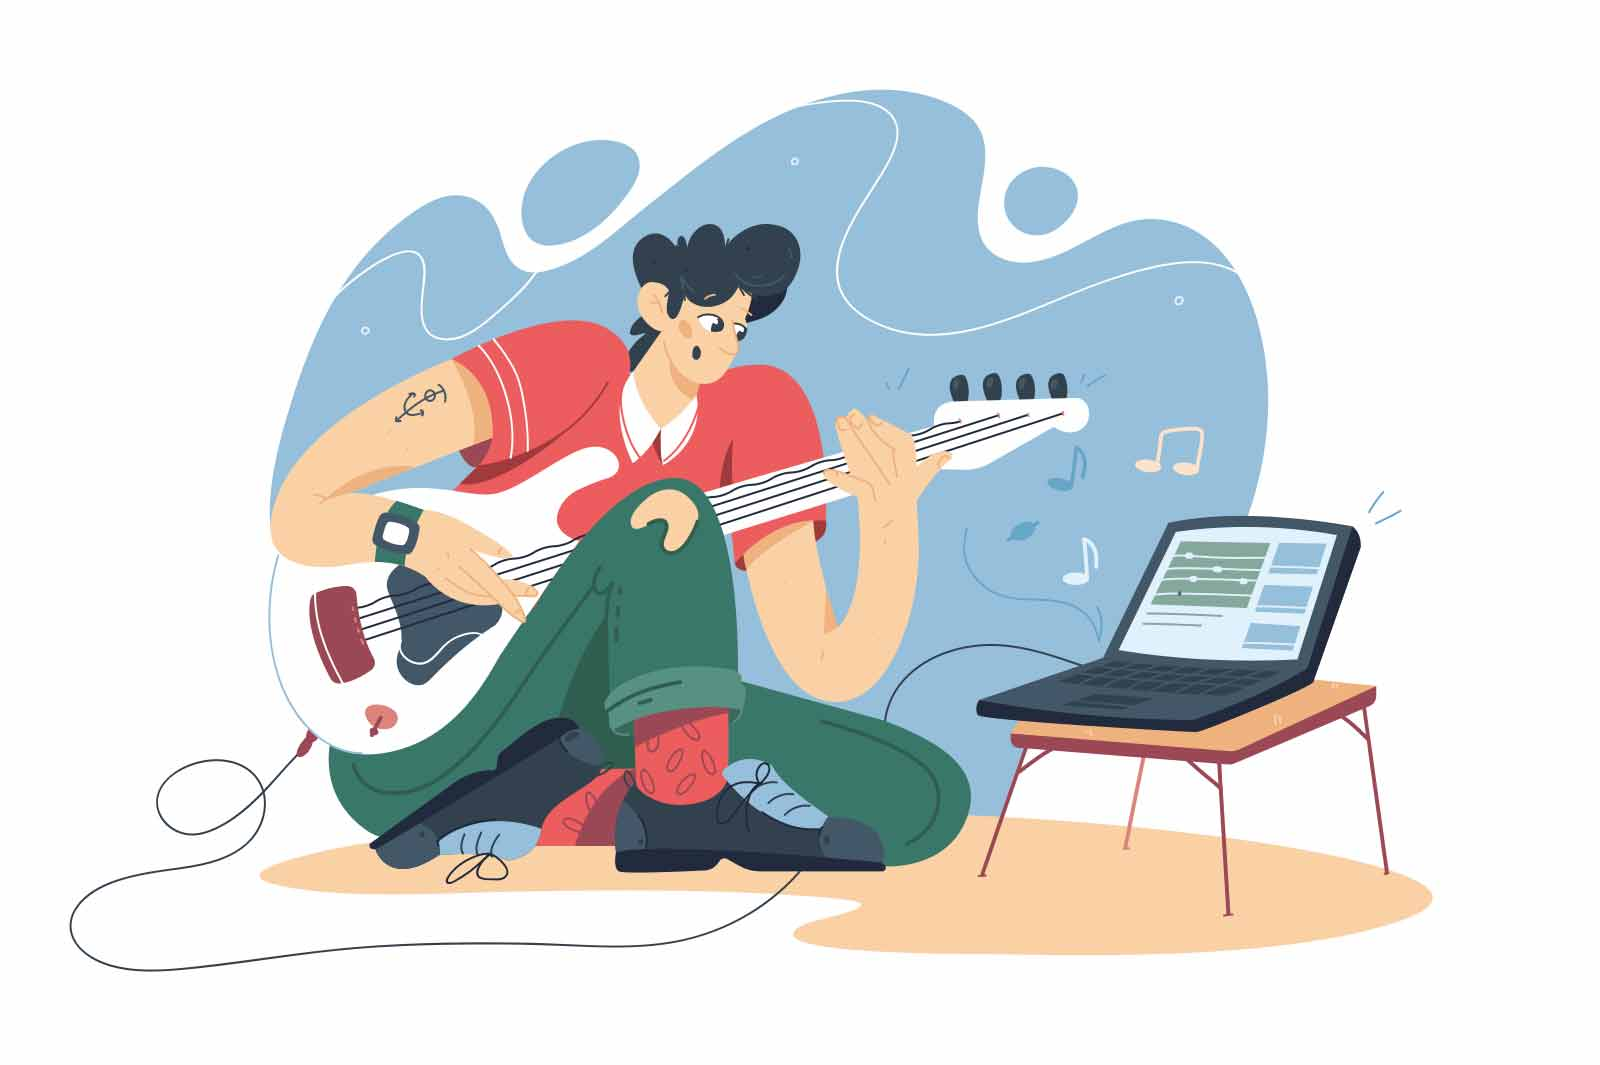 Guy training on guitar online vector illustration. Man take music lesson on laptop, repeat song flat style. Music, education, hobby concept